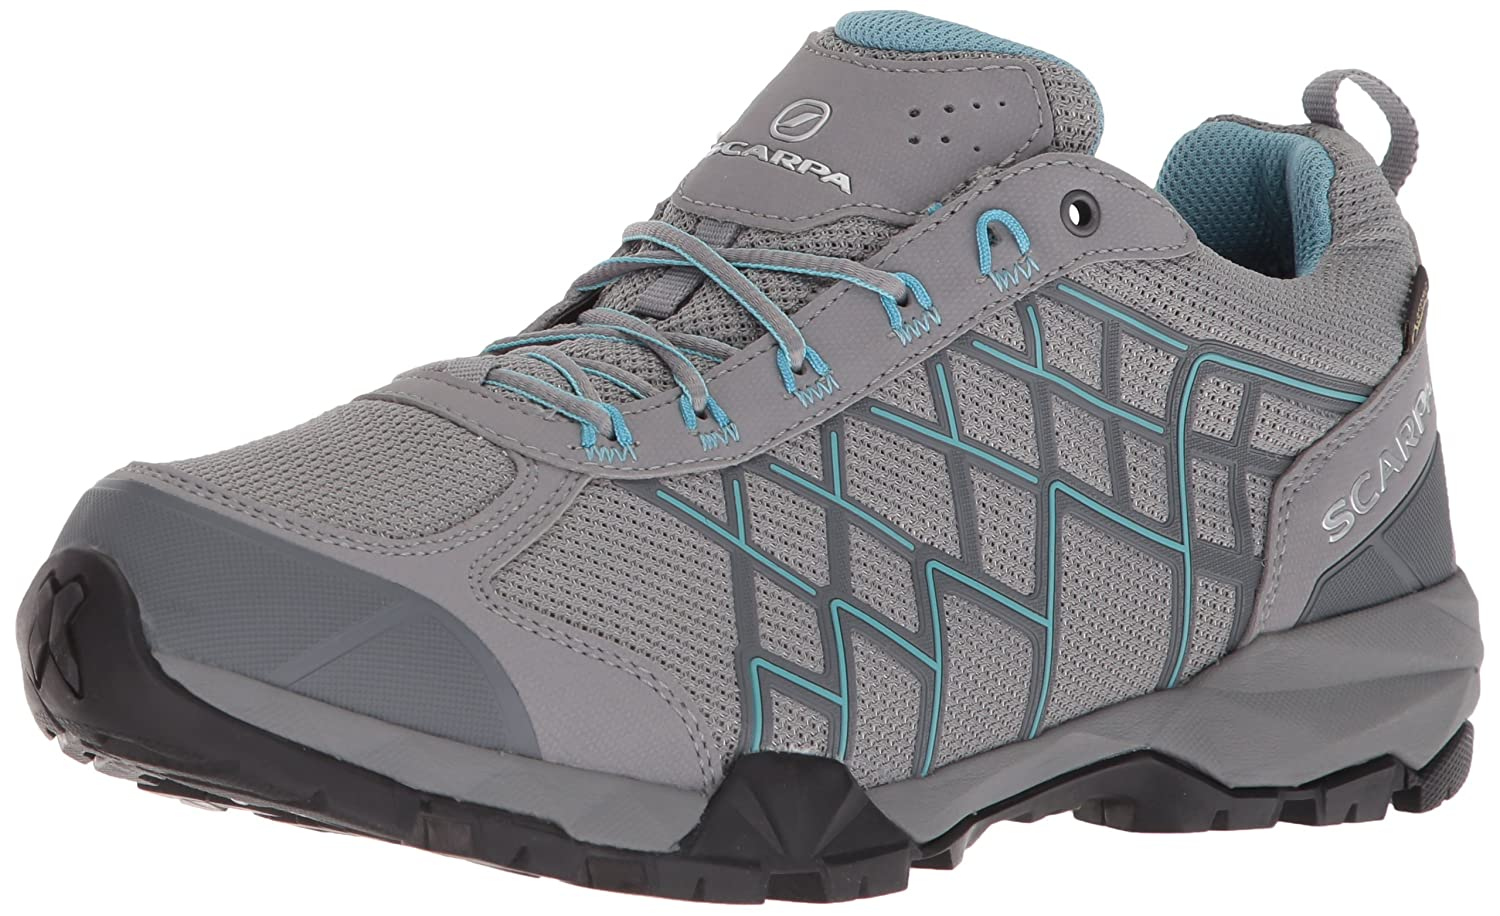 SCARPA レディース B074QT32RZ 40.5 Regular EU (US W 8.5-9, UK 6.5-7 US)|Mid Grey/Still Water Mid Grey/Still Water 40.5 Regular EU (US W 8.5-9, UK 6.5-7 US)